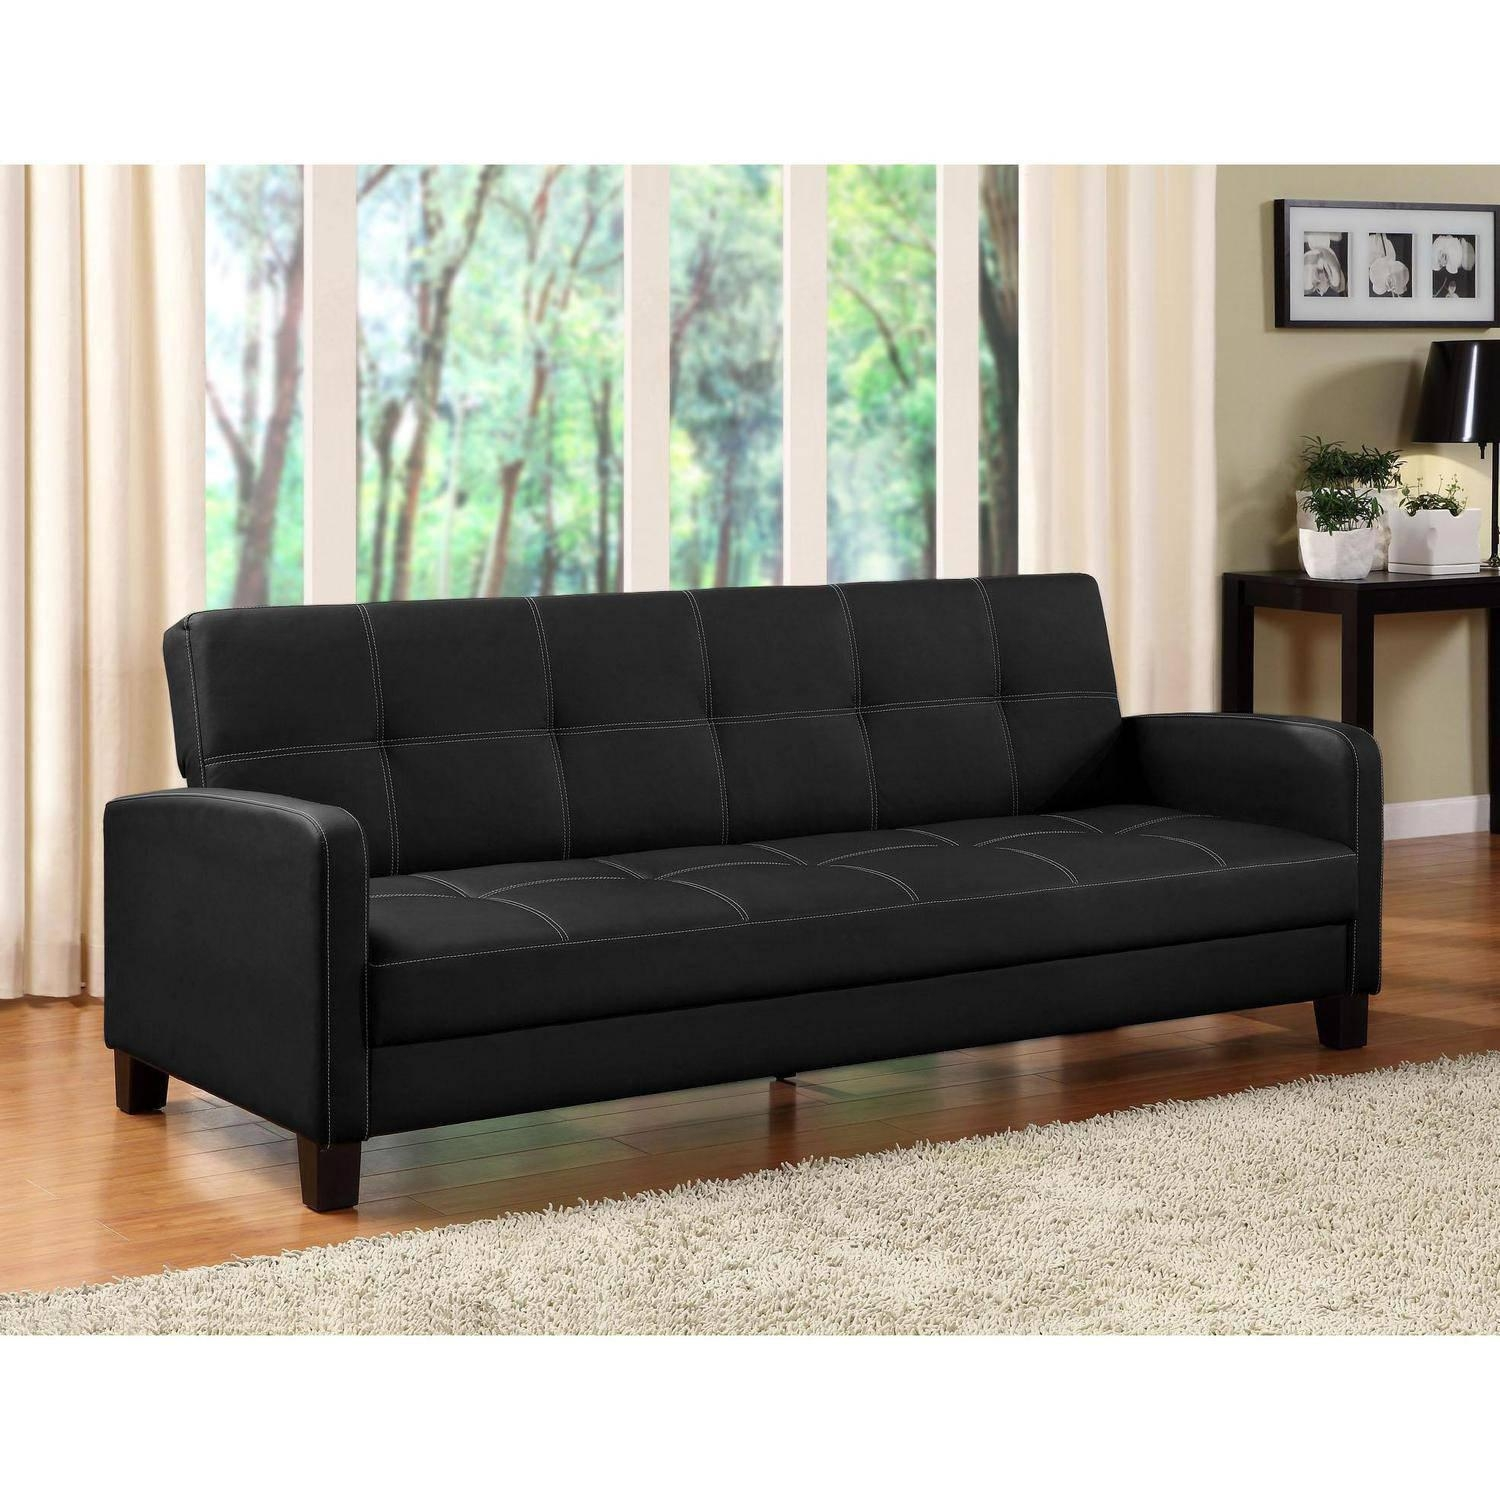 Walmart Faux Leather Sleeper Sofa – Ansugallery With Faux Leather Sleeper Sofas (View 4 of 20)